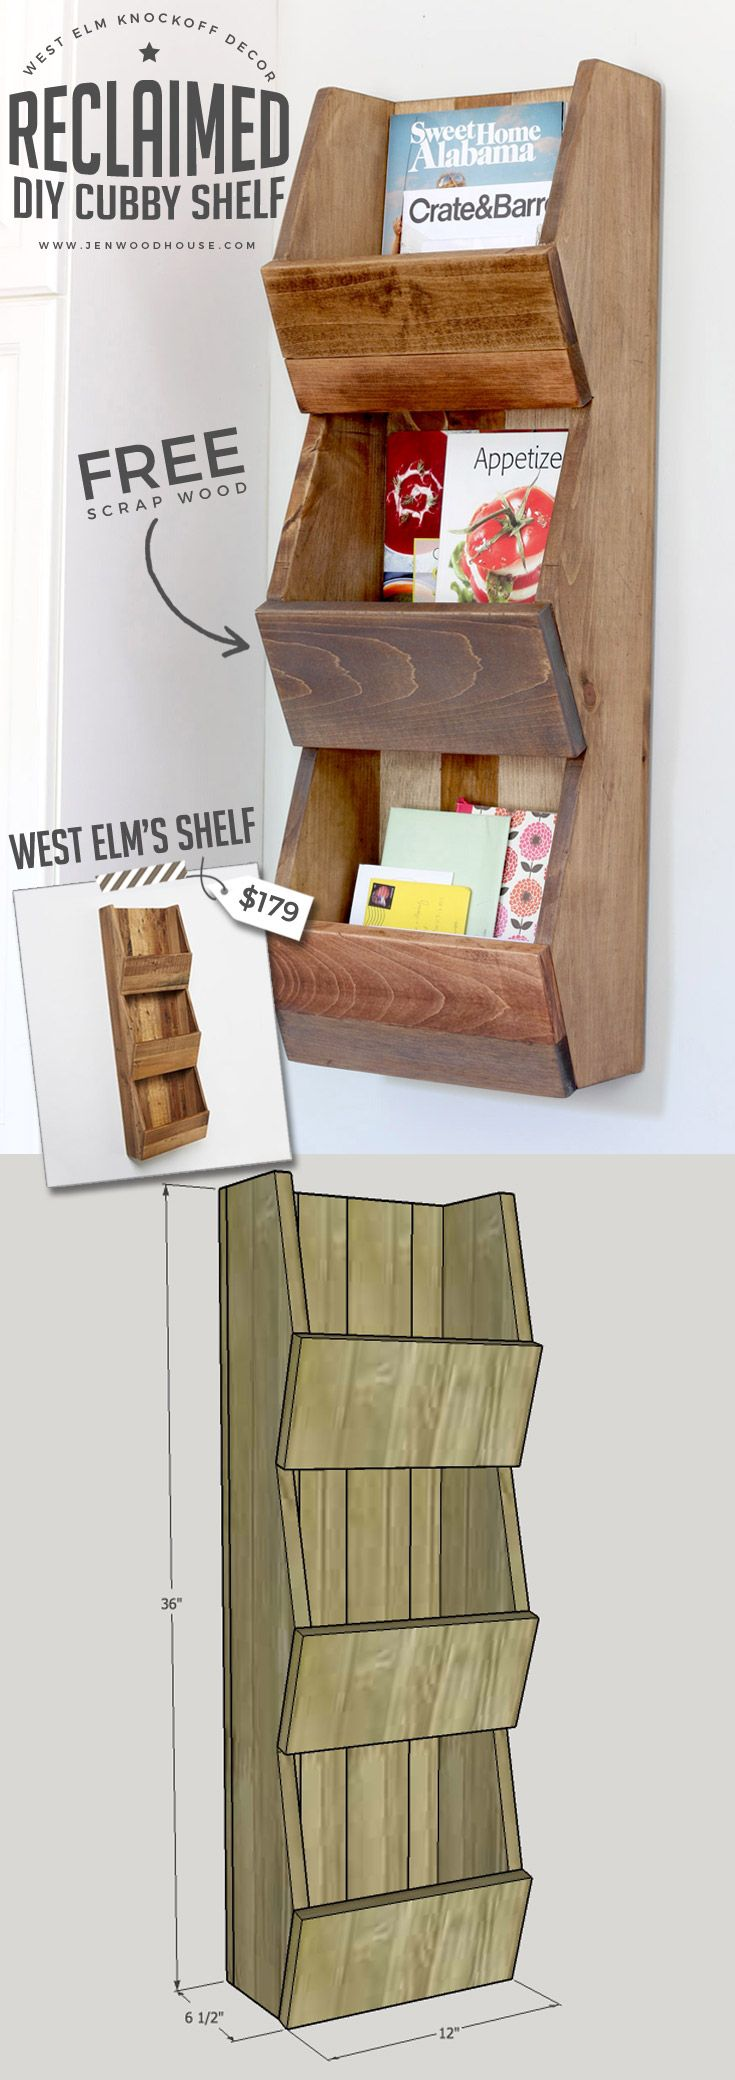 best 25 scrap wood projects ideas on pinterest rustic wood easy wood projects and pallet. Black Bedroom Furniture Sets. Home Design Ideas